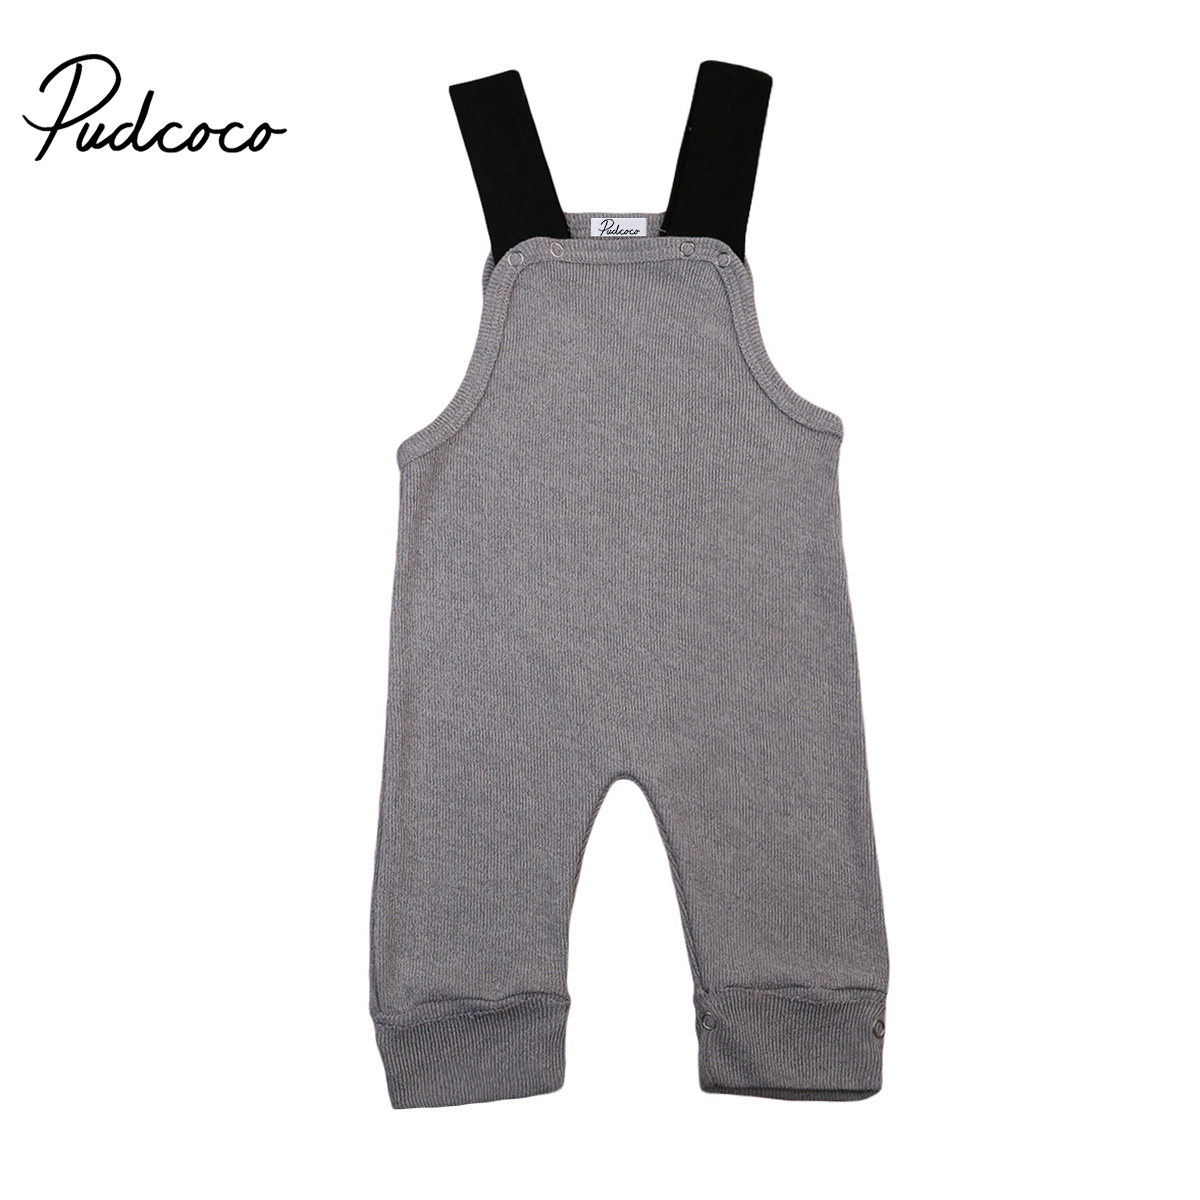 Cute Newborn Baby Boys Girls 2017 New Knit Sleeveless   Romper   Jumpsuit Bib Pants Overalls Clothes